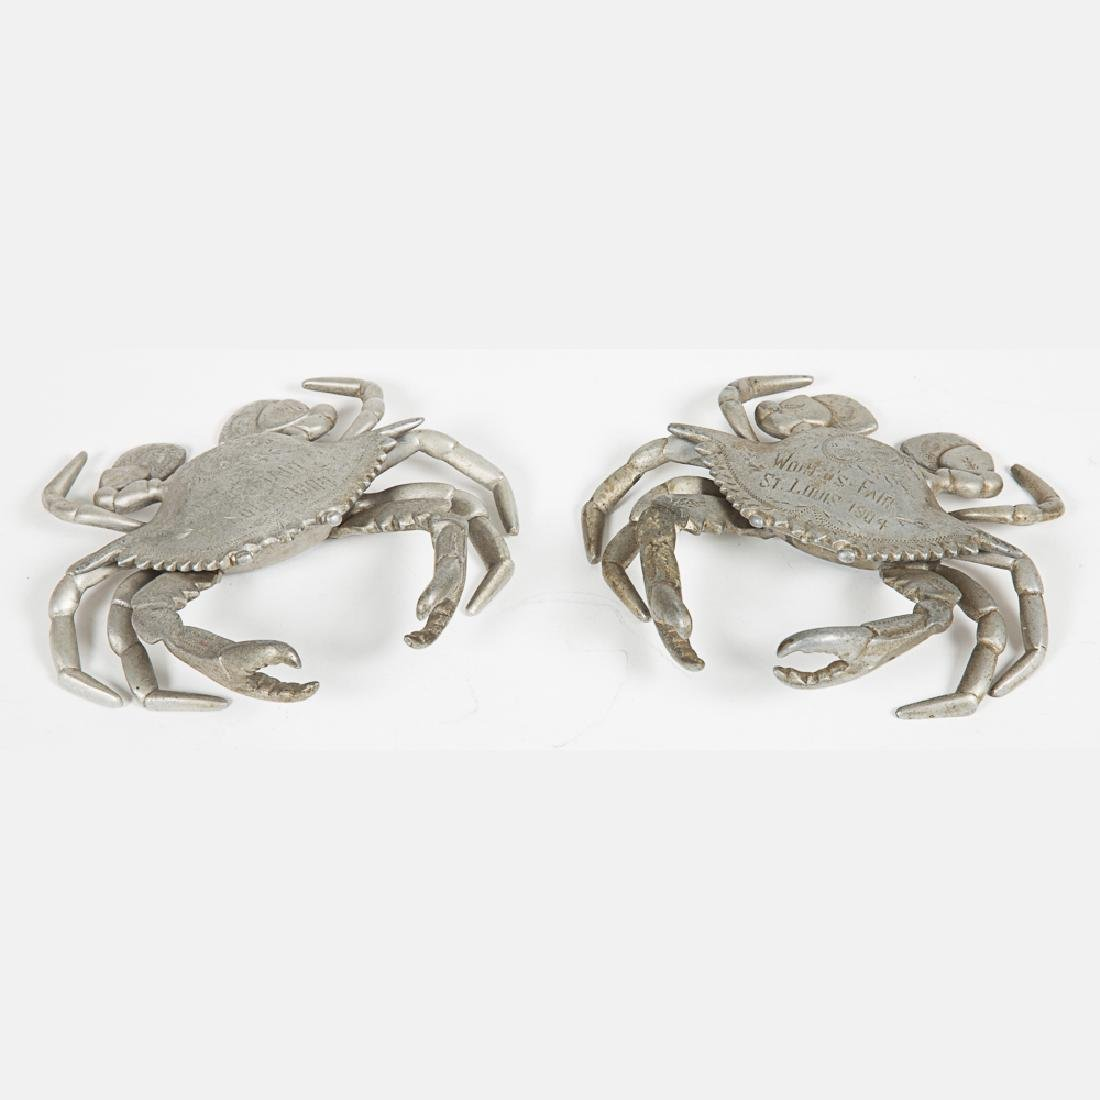 Two Aluminum Crab Form Encriers from the Louisiana